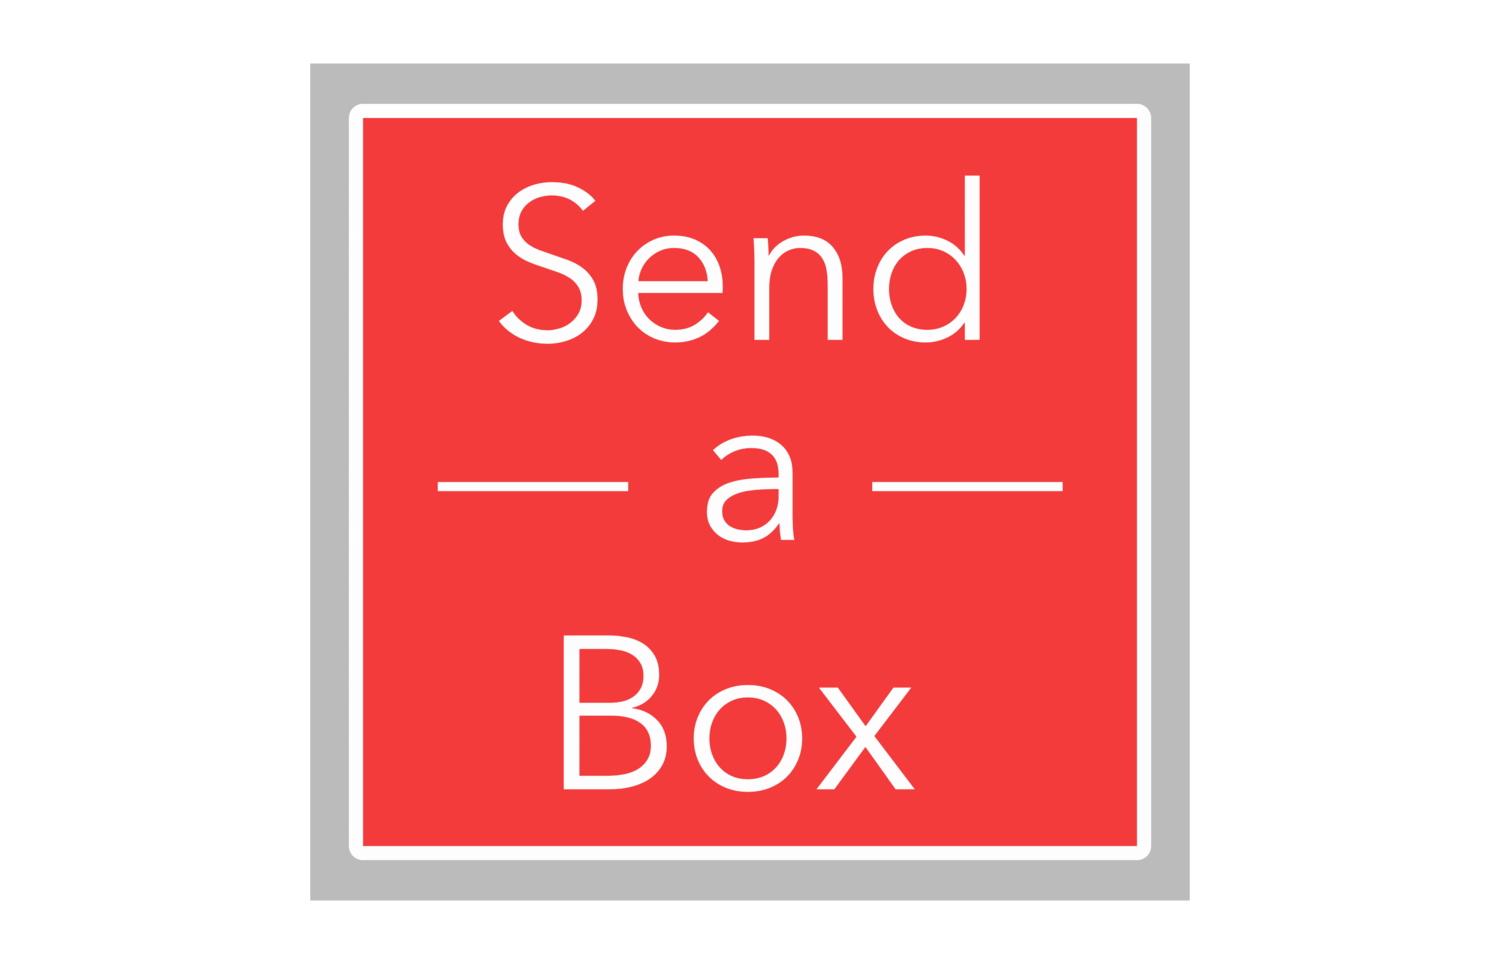 Send a Box - Give someone that special GiftGlow